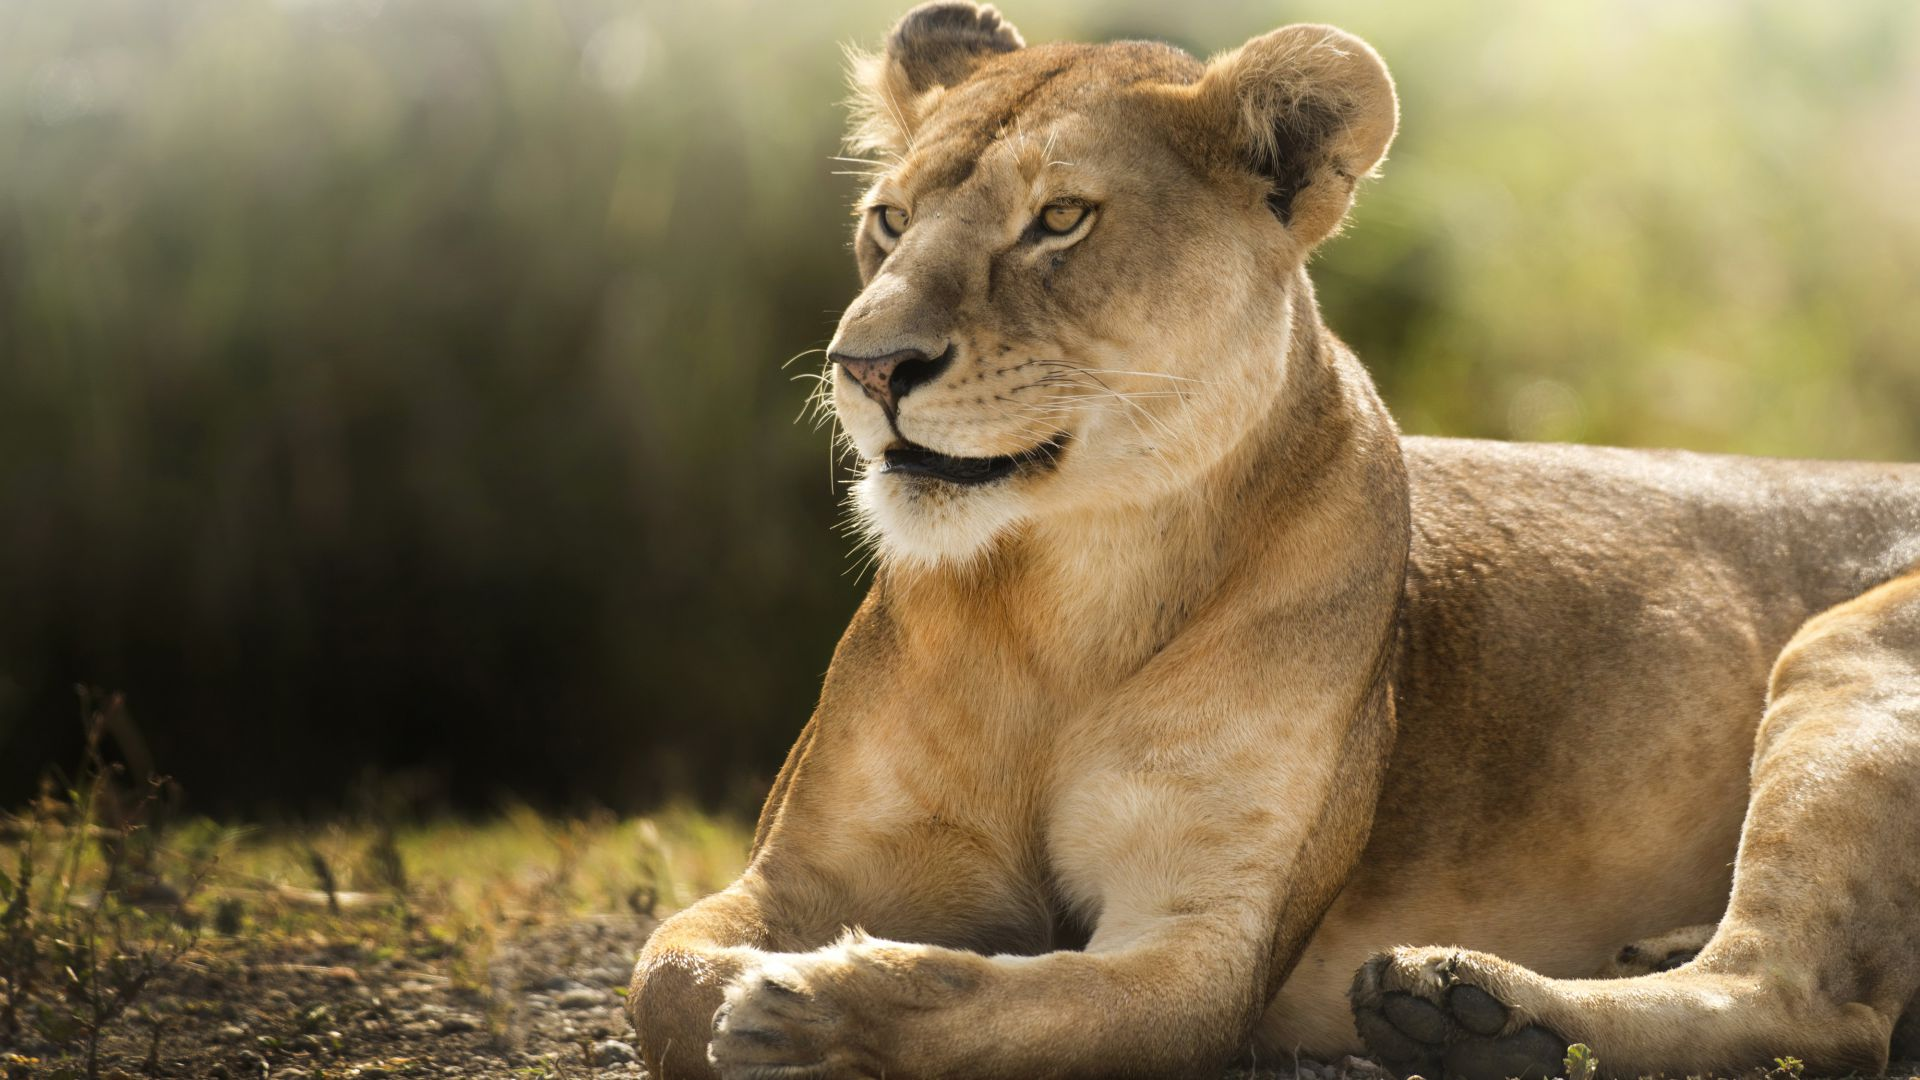 Lion, savanna, cute animals (horizontal)